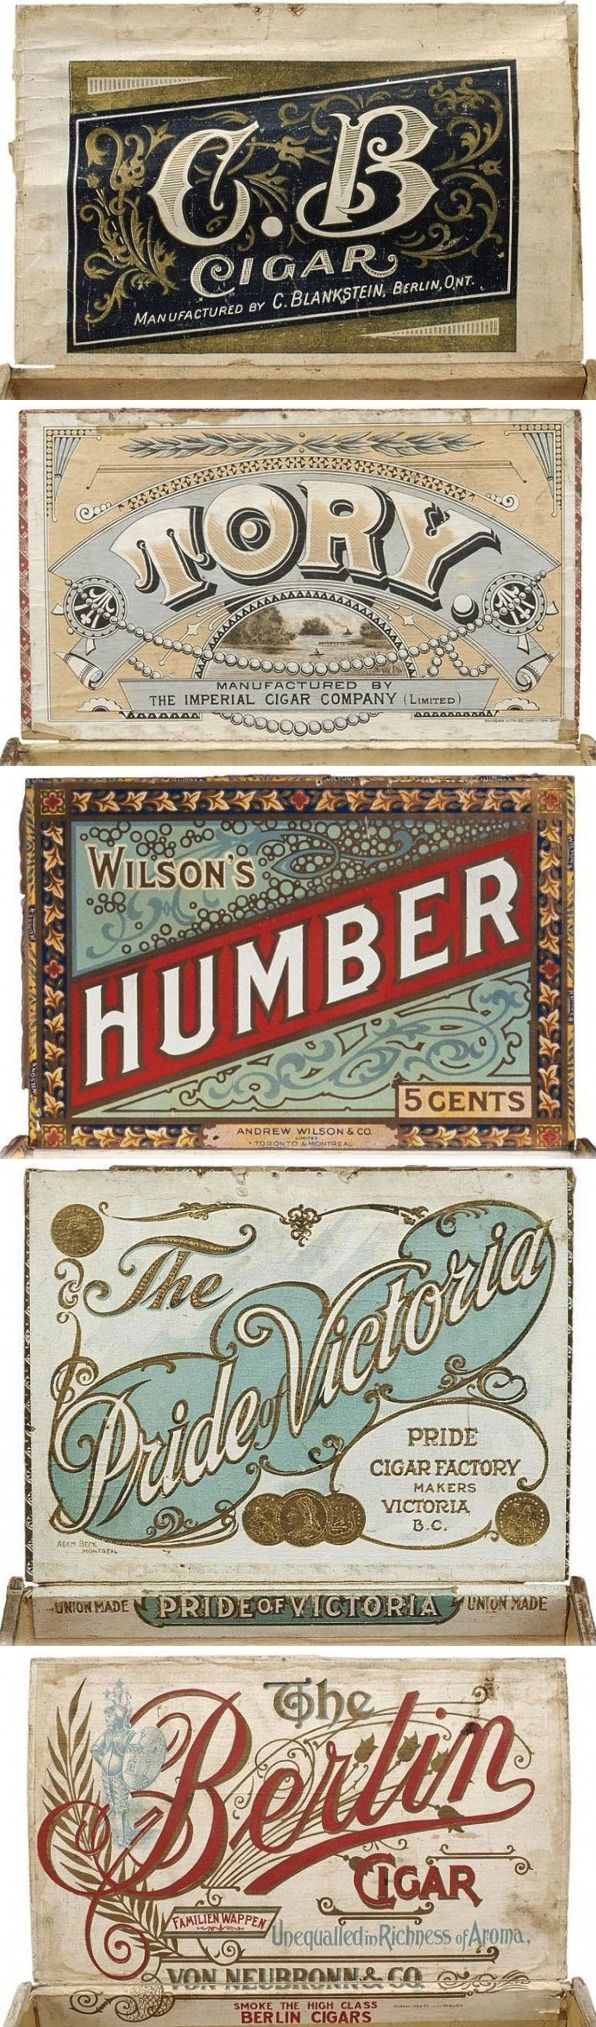 These cigar box labels are beautiful without being too fussy.